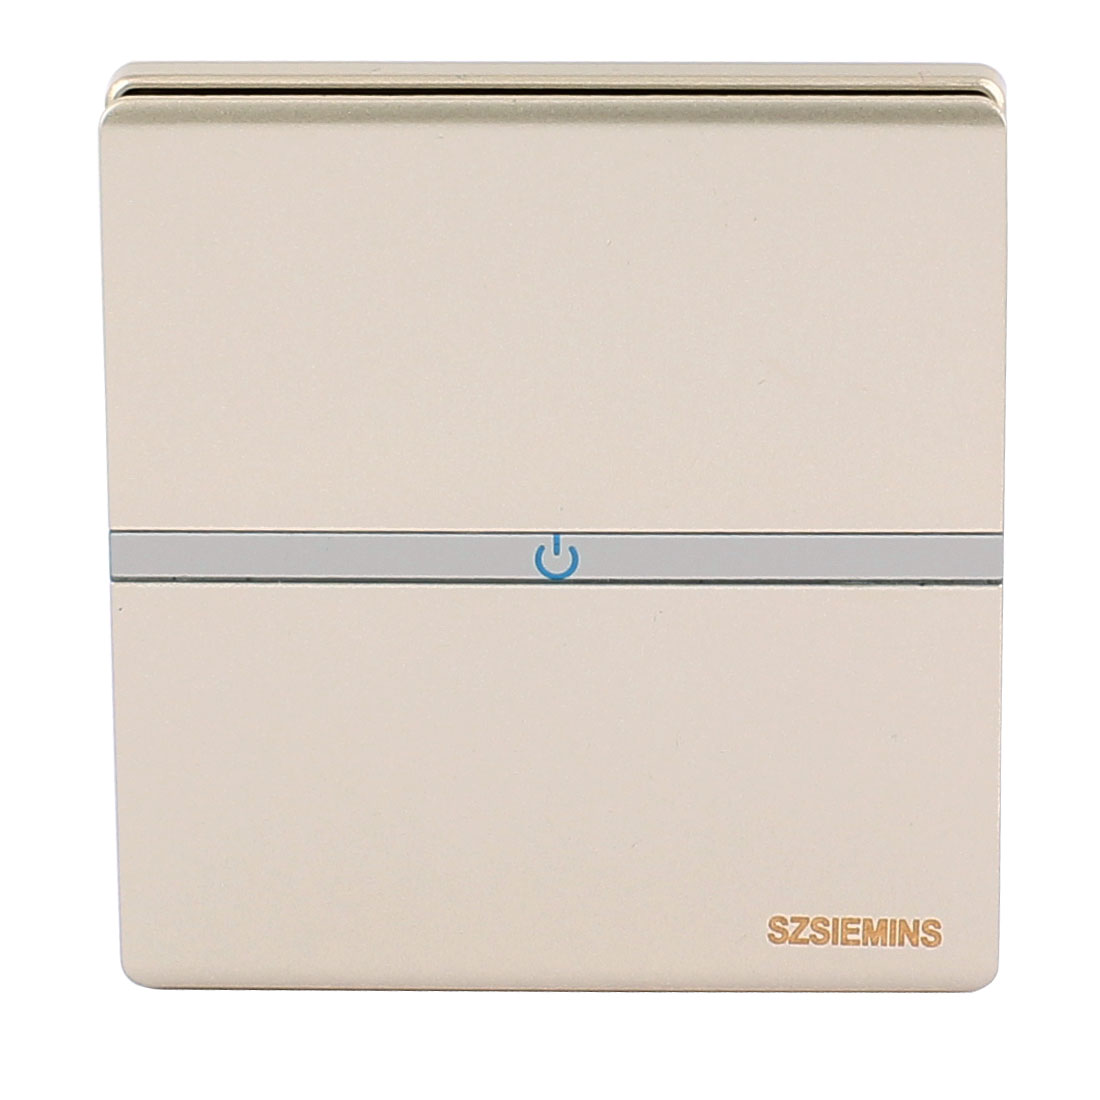 AC 250V 16A 1 Gang 1 Way On/Off Frameless Large Press Button Wall Switch Light Control Champagne Gold